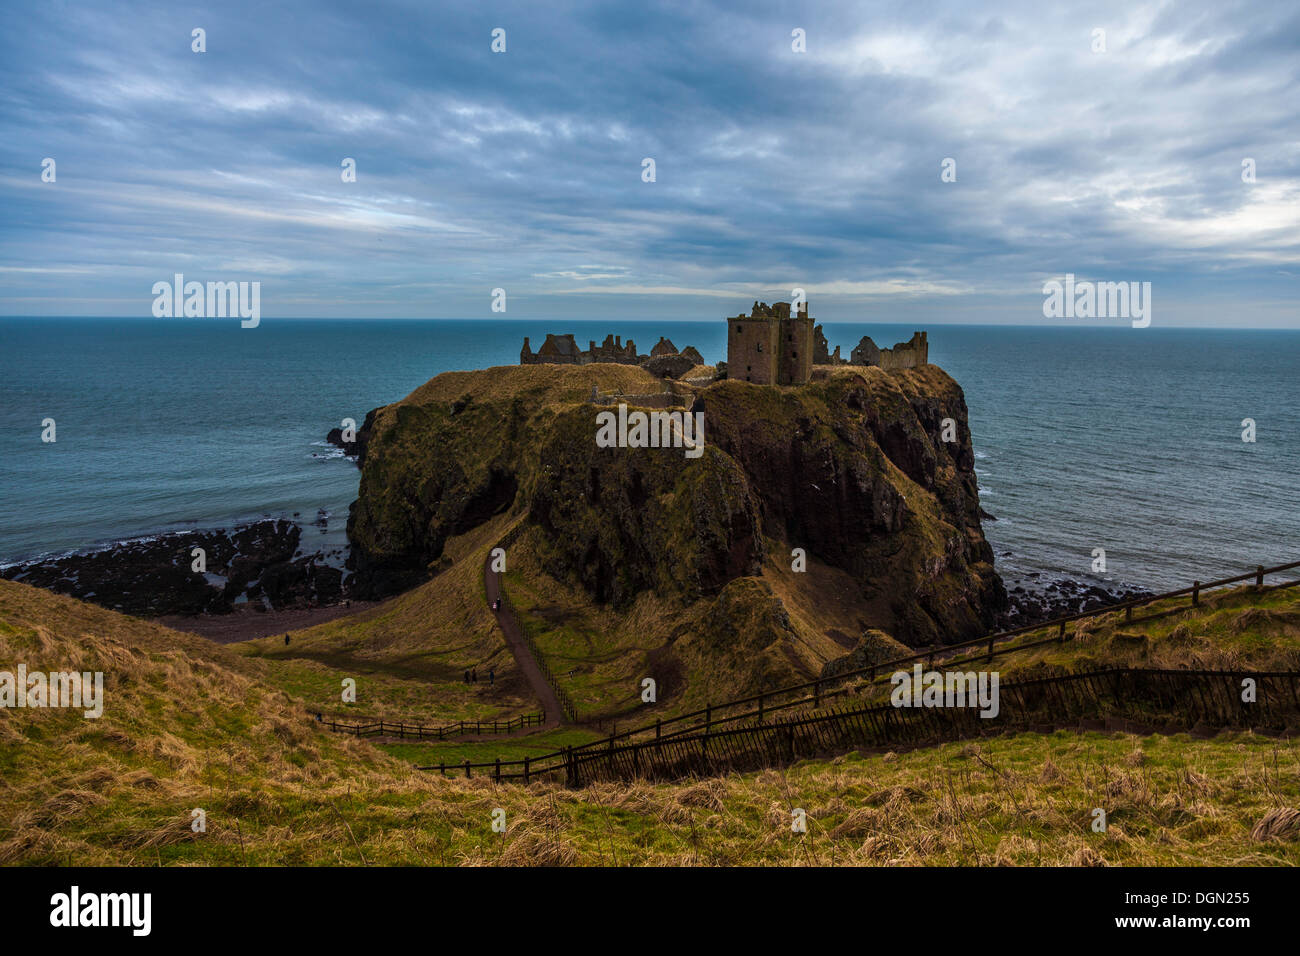 View of Dunnottar Castle with blue sea and sky in the background. - Stock Image